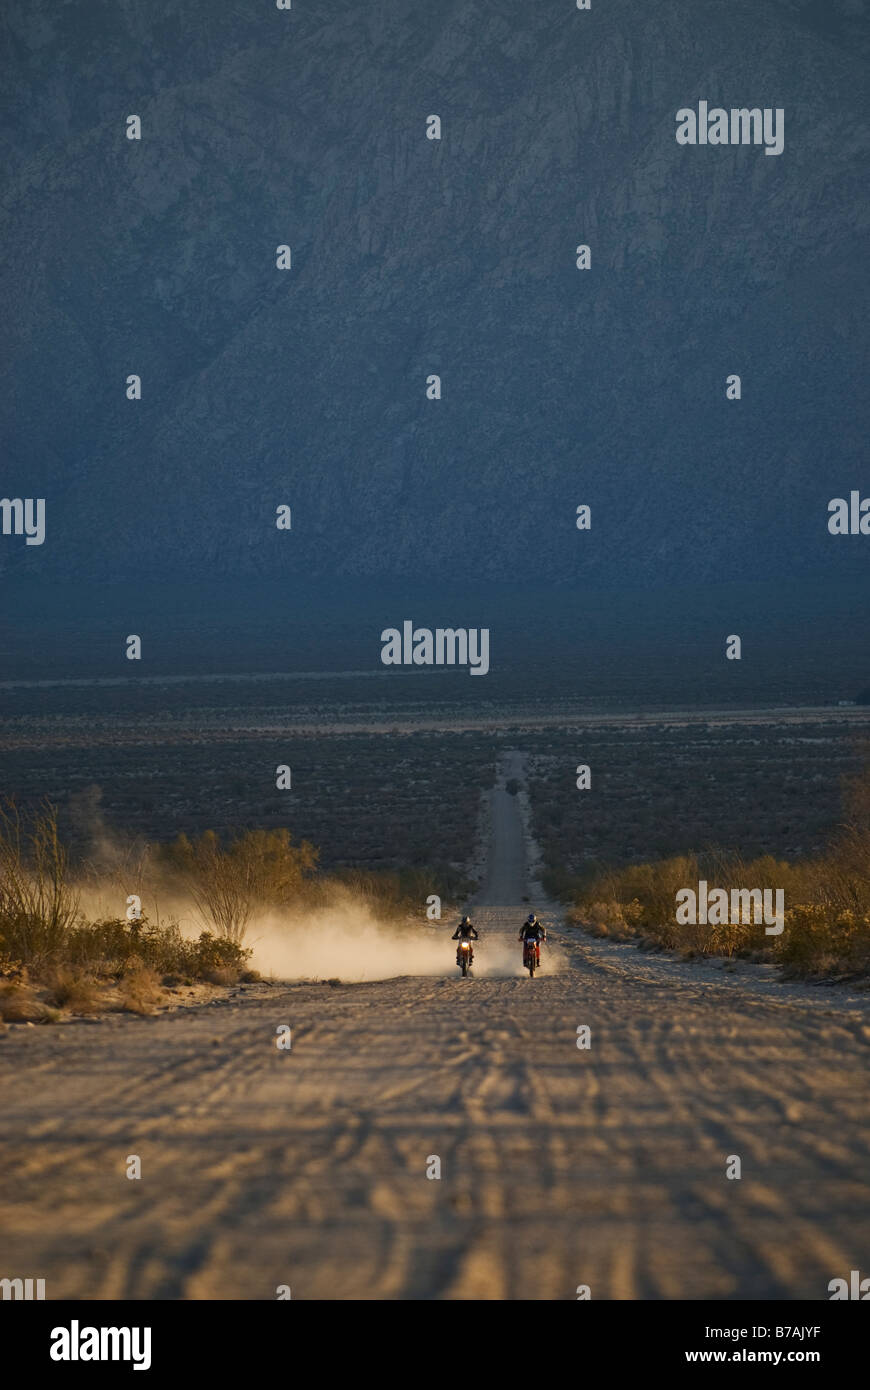 Two offroad motorcycle riders travel down sandy desert road in Baja California, Mexico - Stock Image